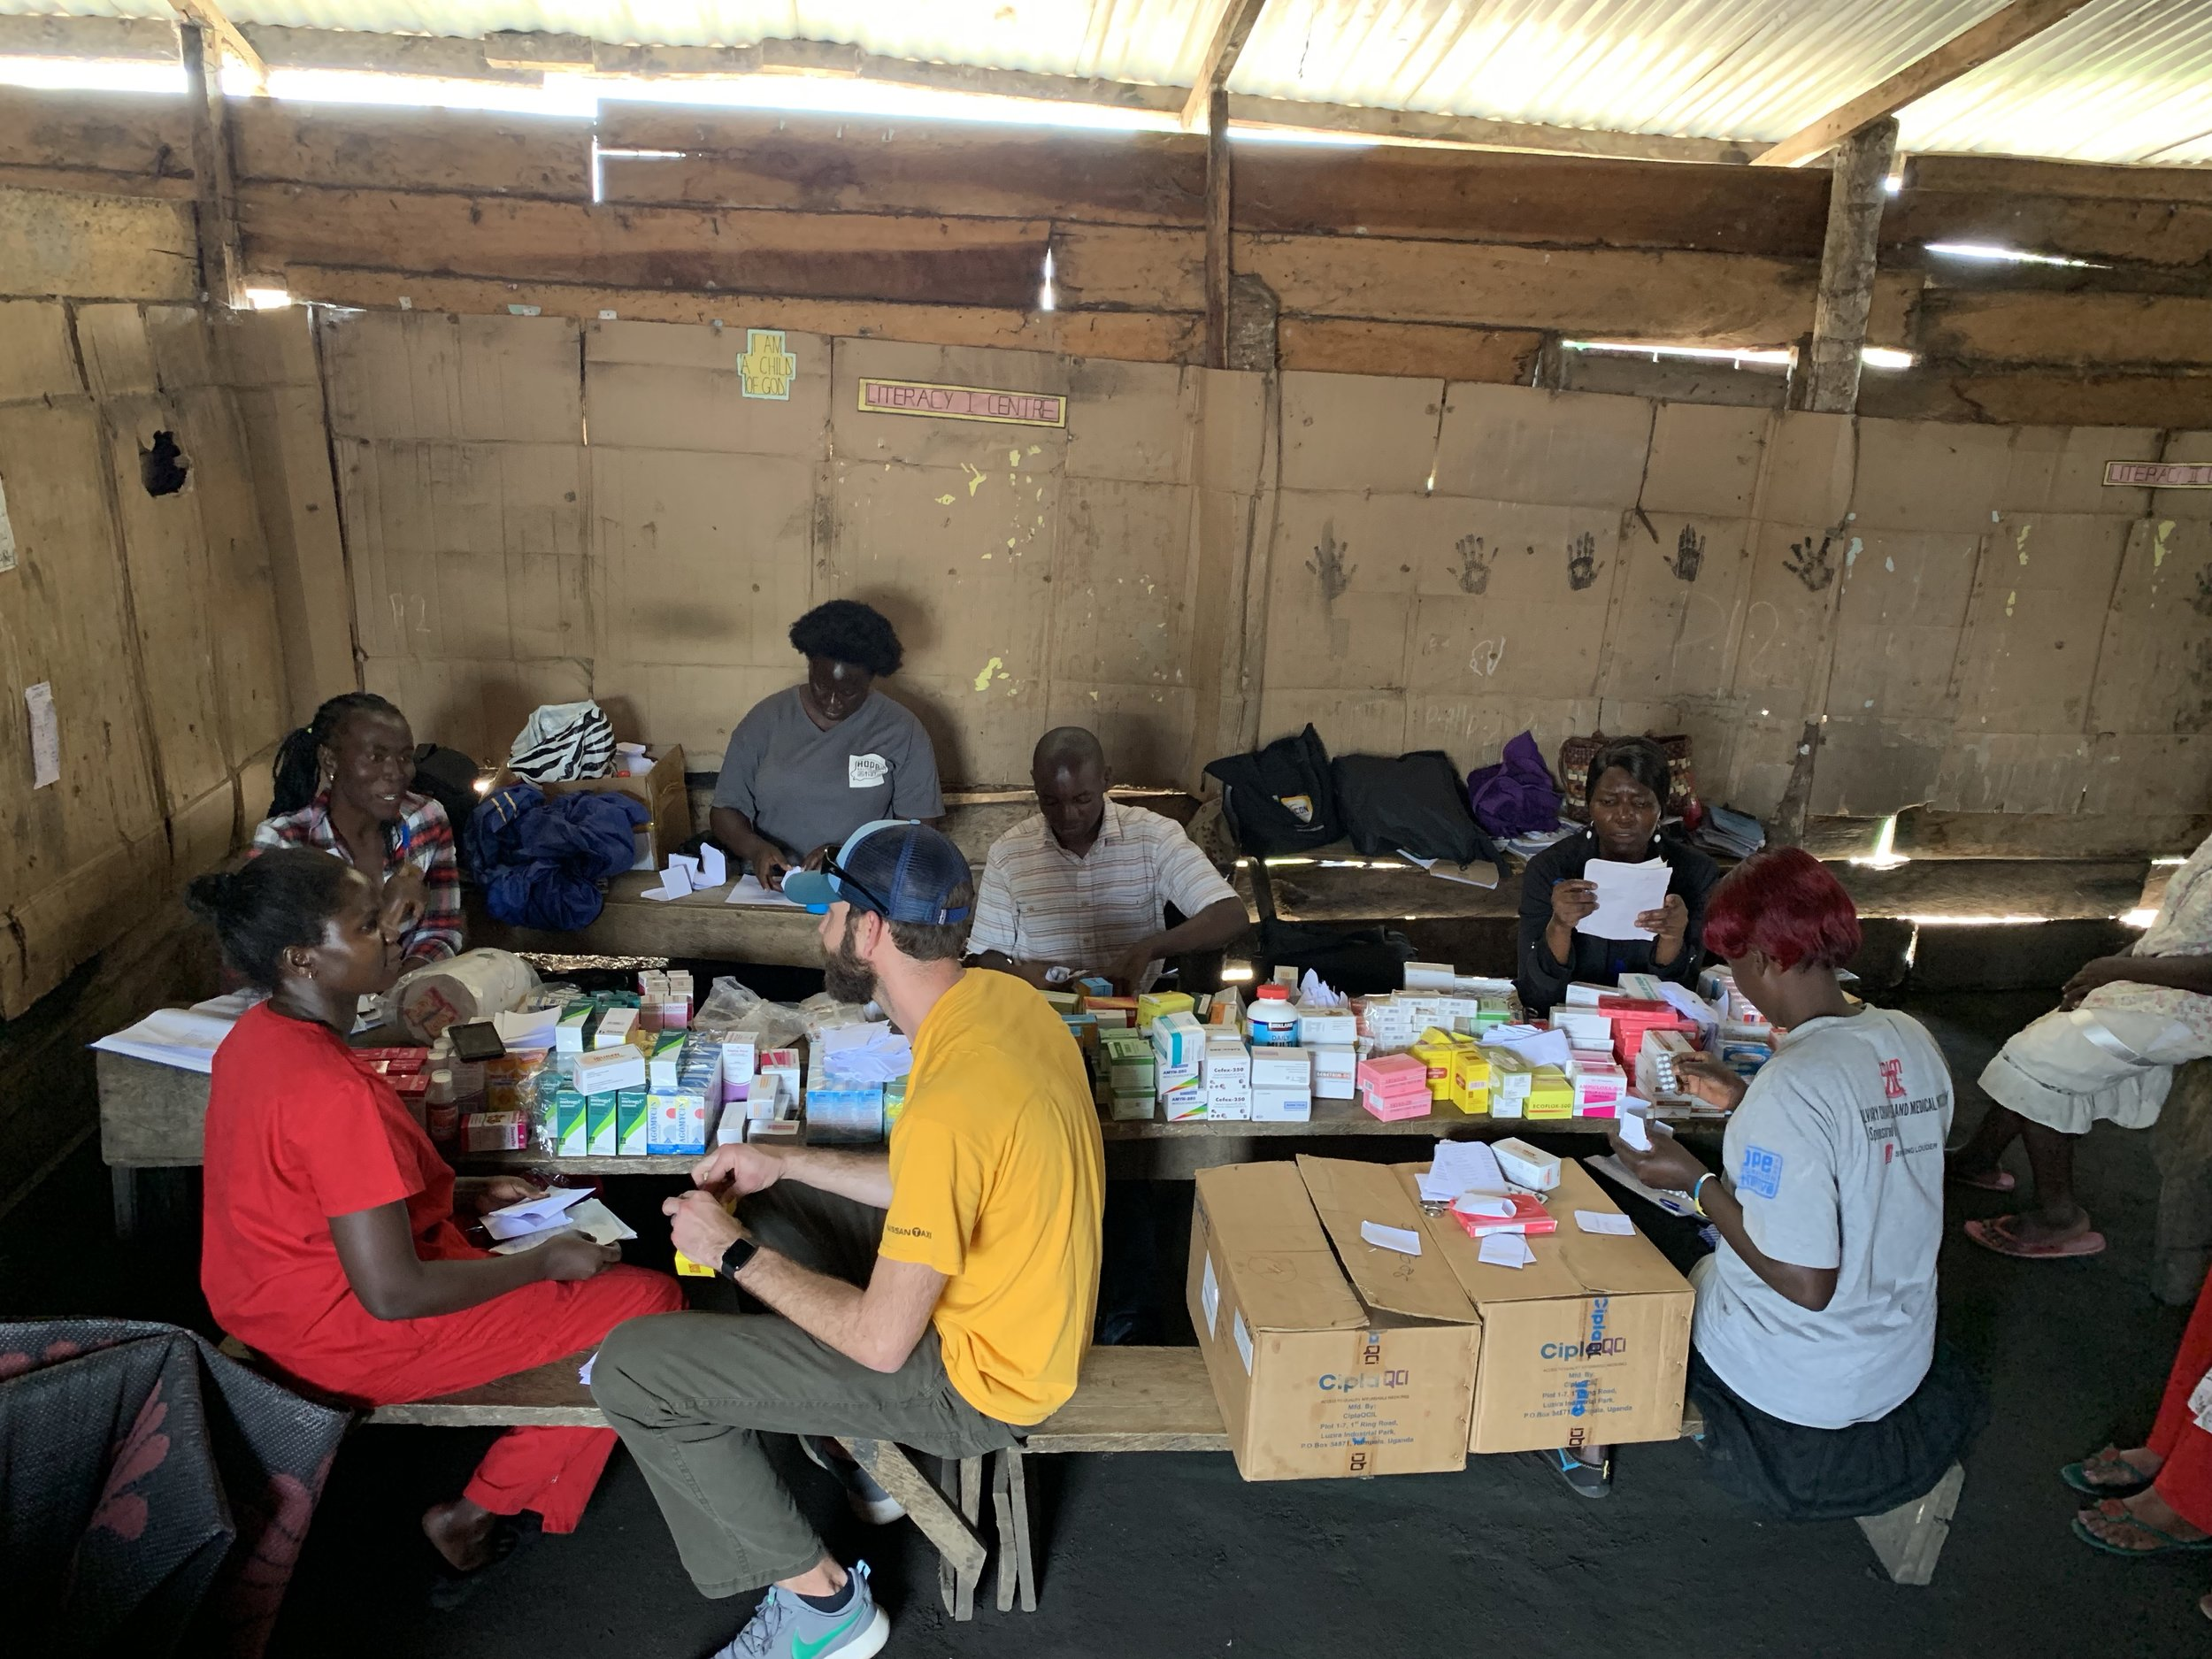 DONATE - Medicinal Crate Campaign – $10,000 by September 1st to purchase medicinal supplies to provide efficient & up to date medicine for up 50,000 people in the central Entebbe Region of Uganda. *We are partnering with Make It Rain for the logistical operations for this vision.